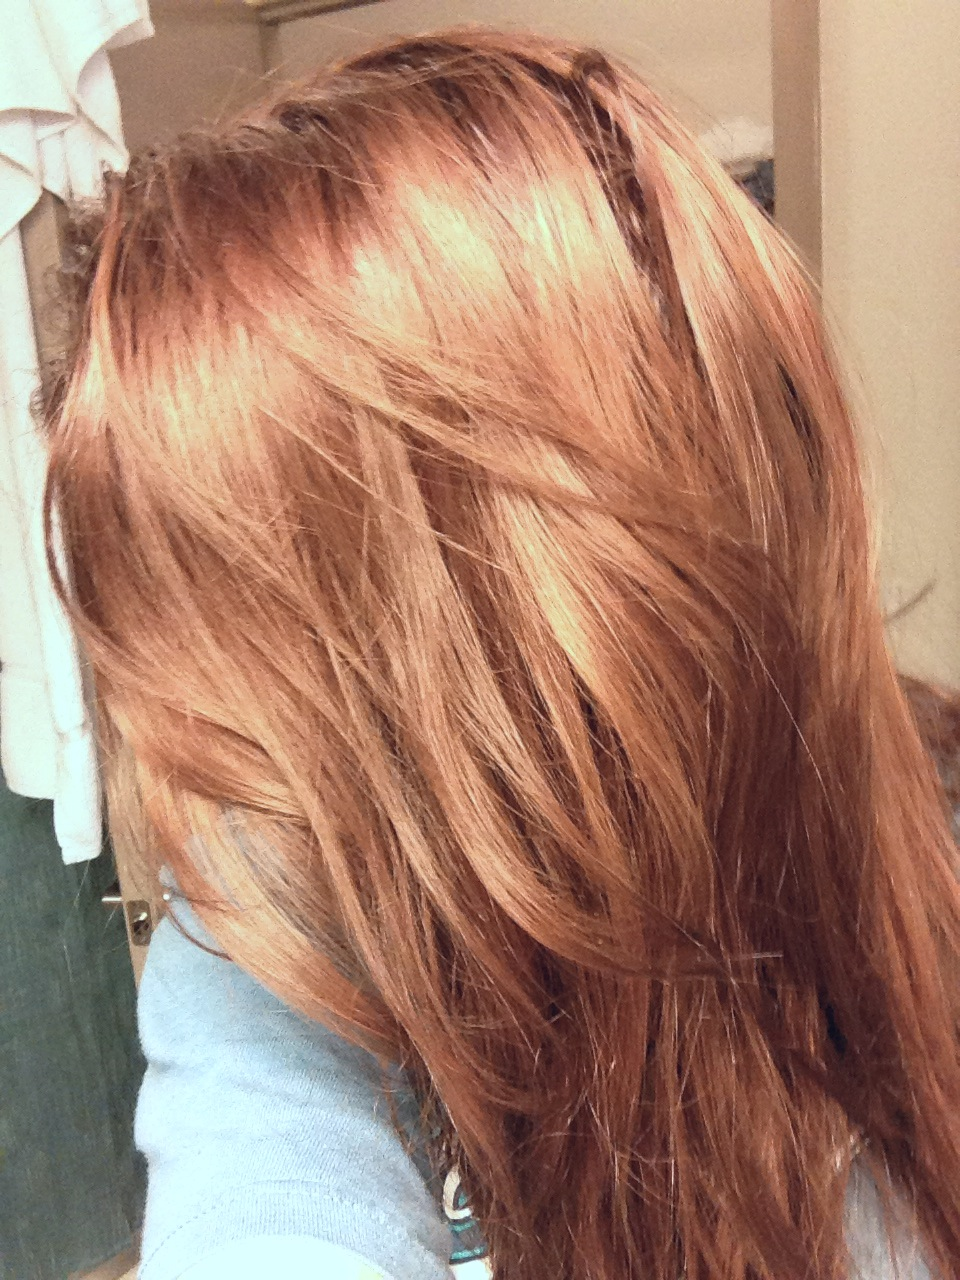 From Class To Date Night Ulta Red Hair Glaze Review